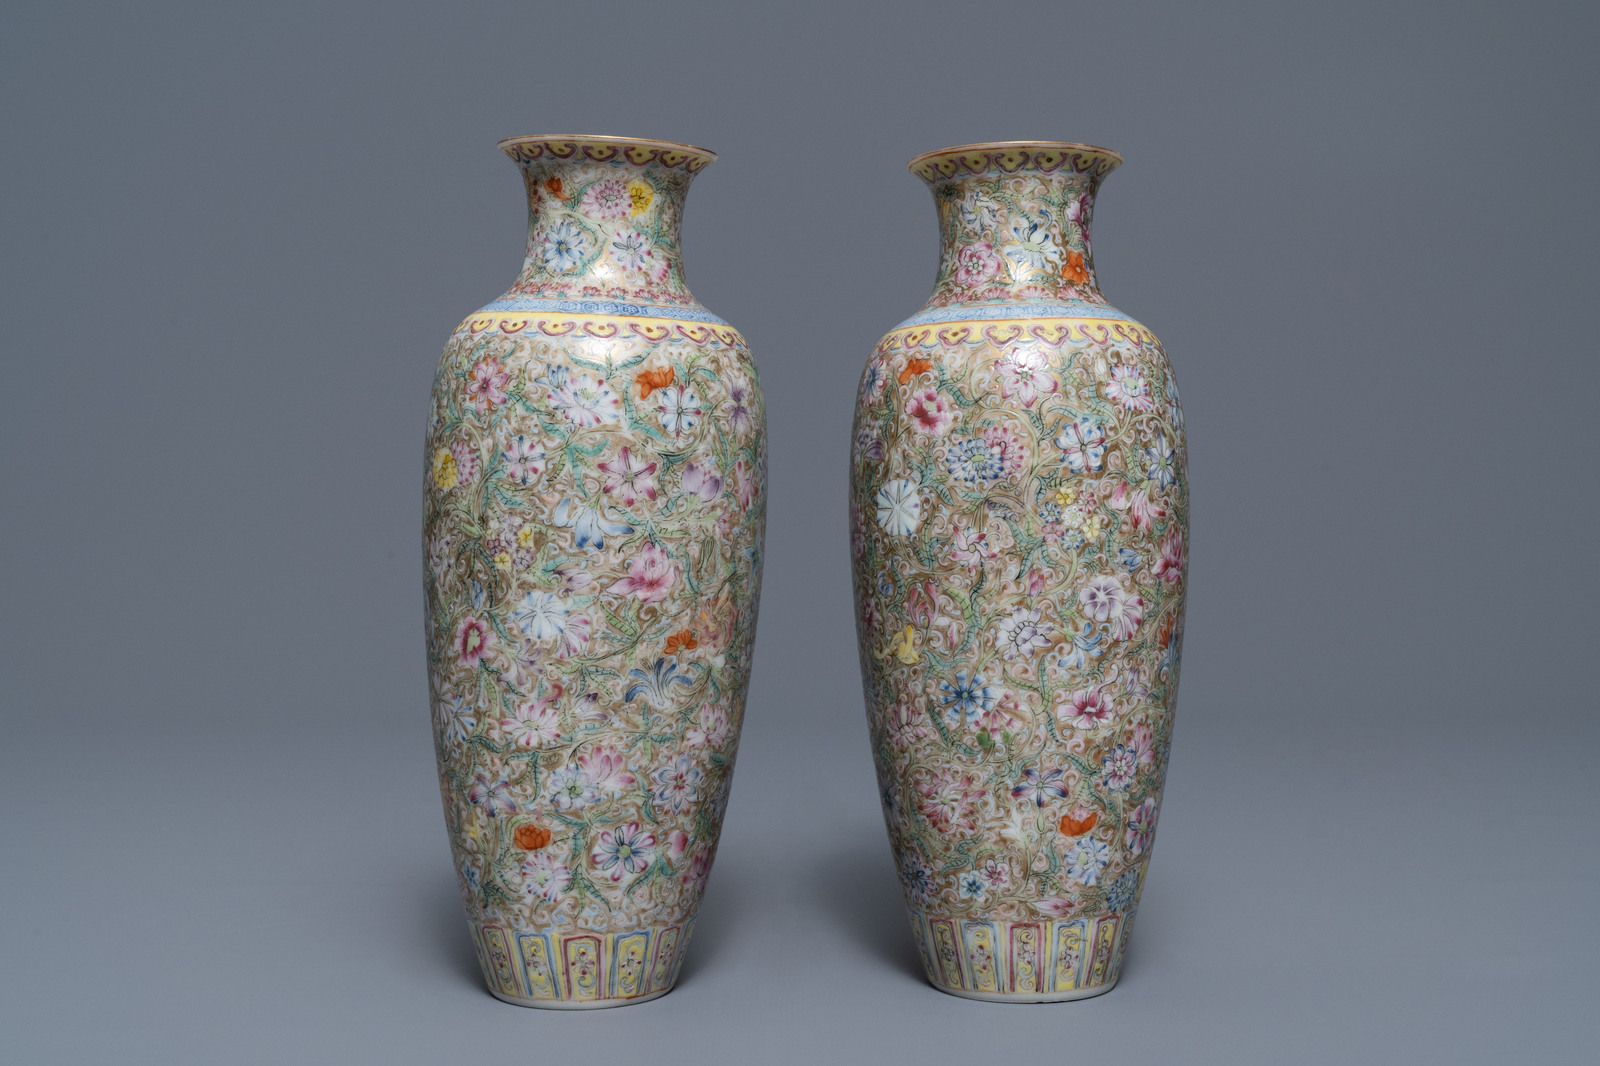 Lot 3 - A pair of Chinese famille rose 'millefleurs' eggshell vases, Qianlong mark, Republic, 20th C.